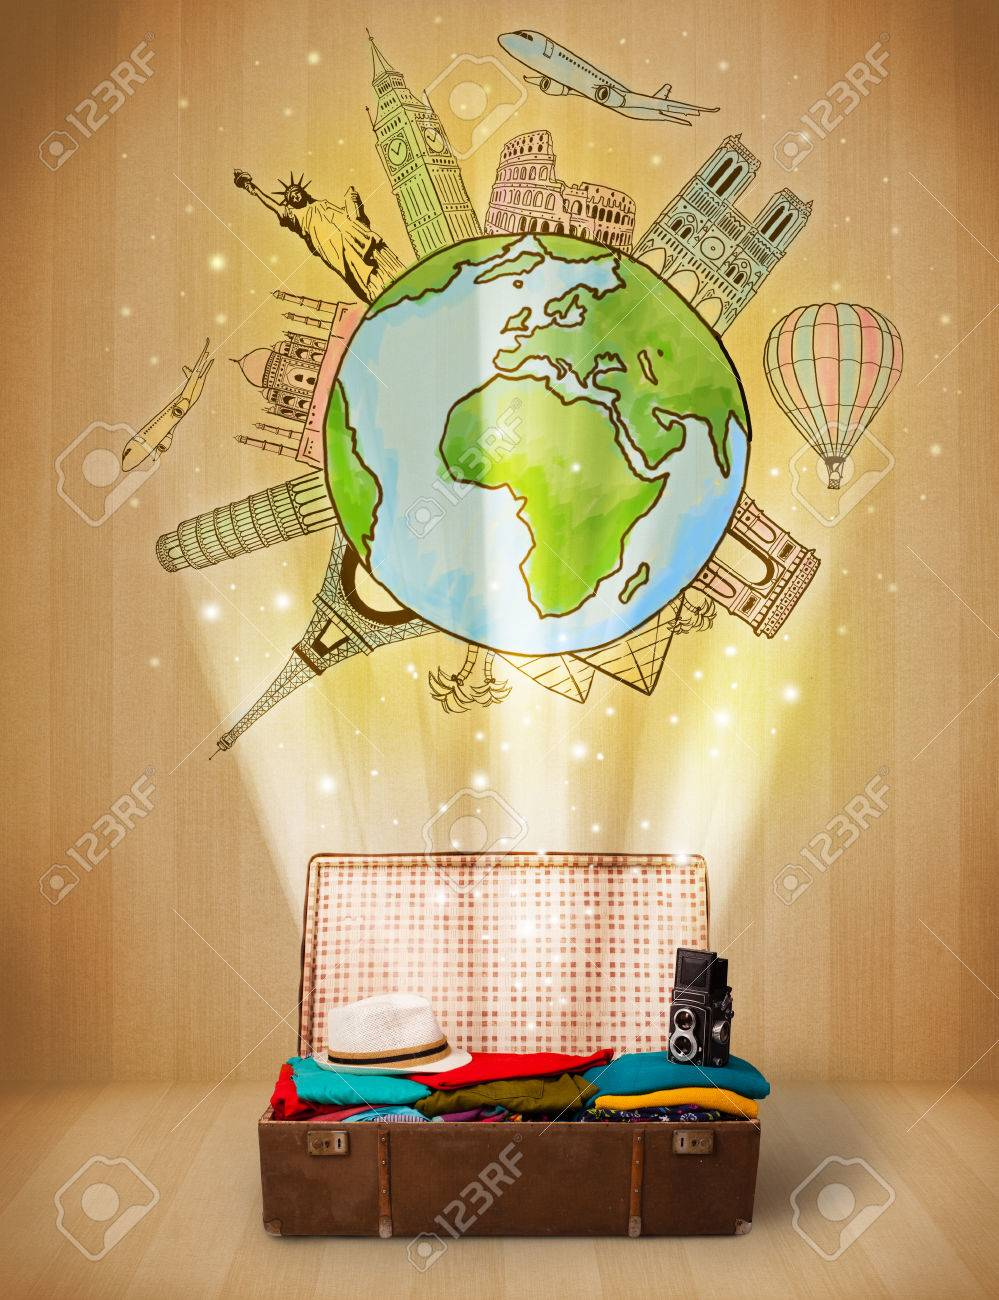 Luggage with travel around the world illustration concept on grungy background Stock Photo - 25133343